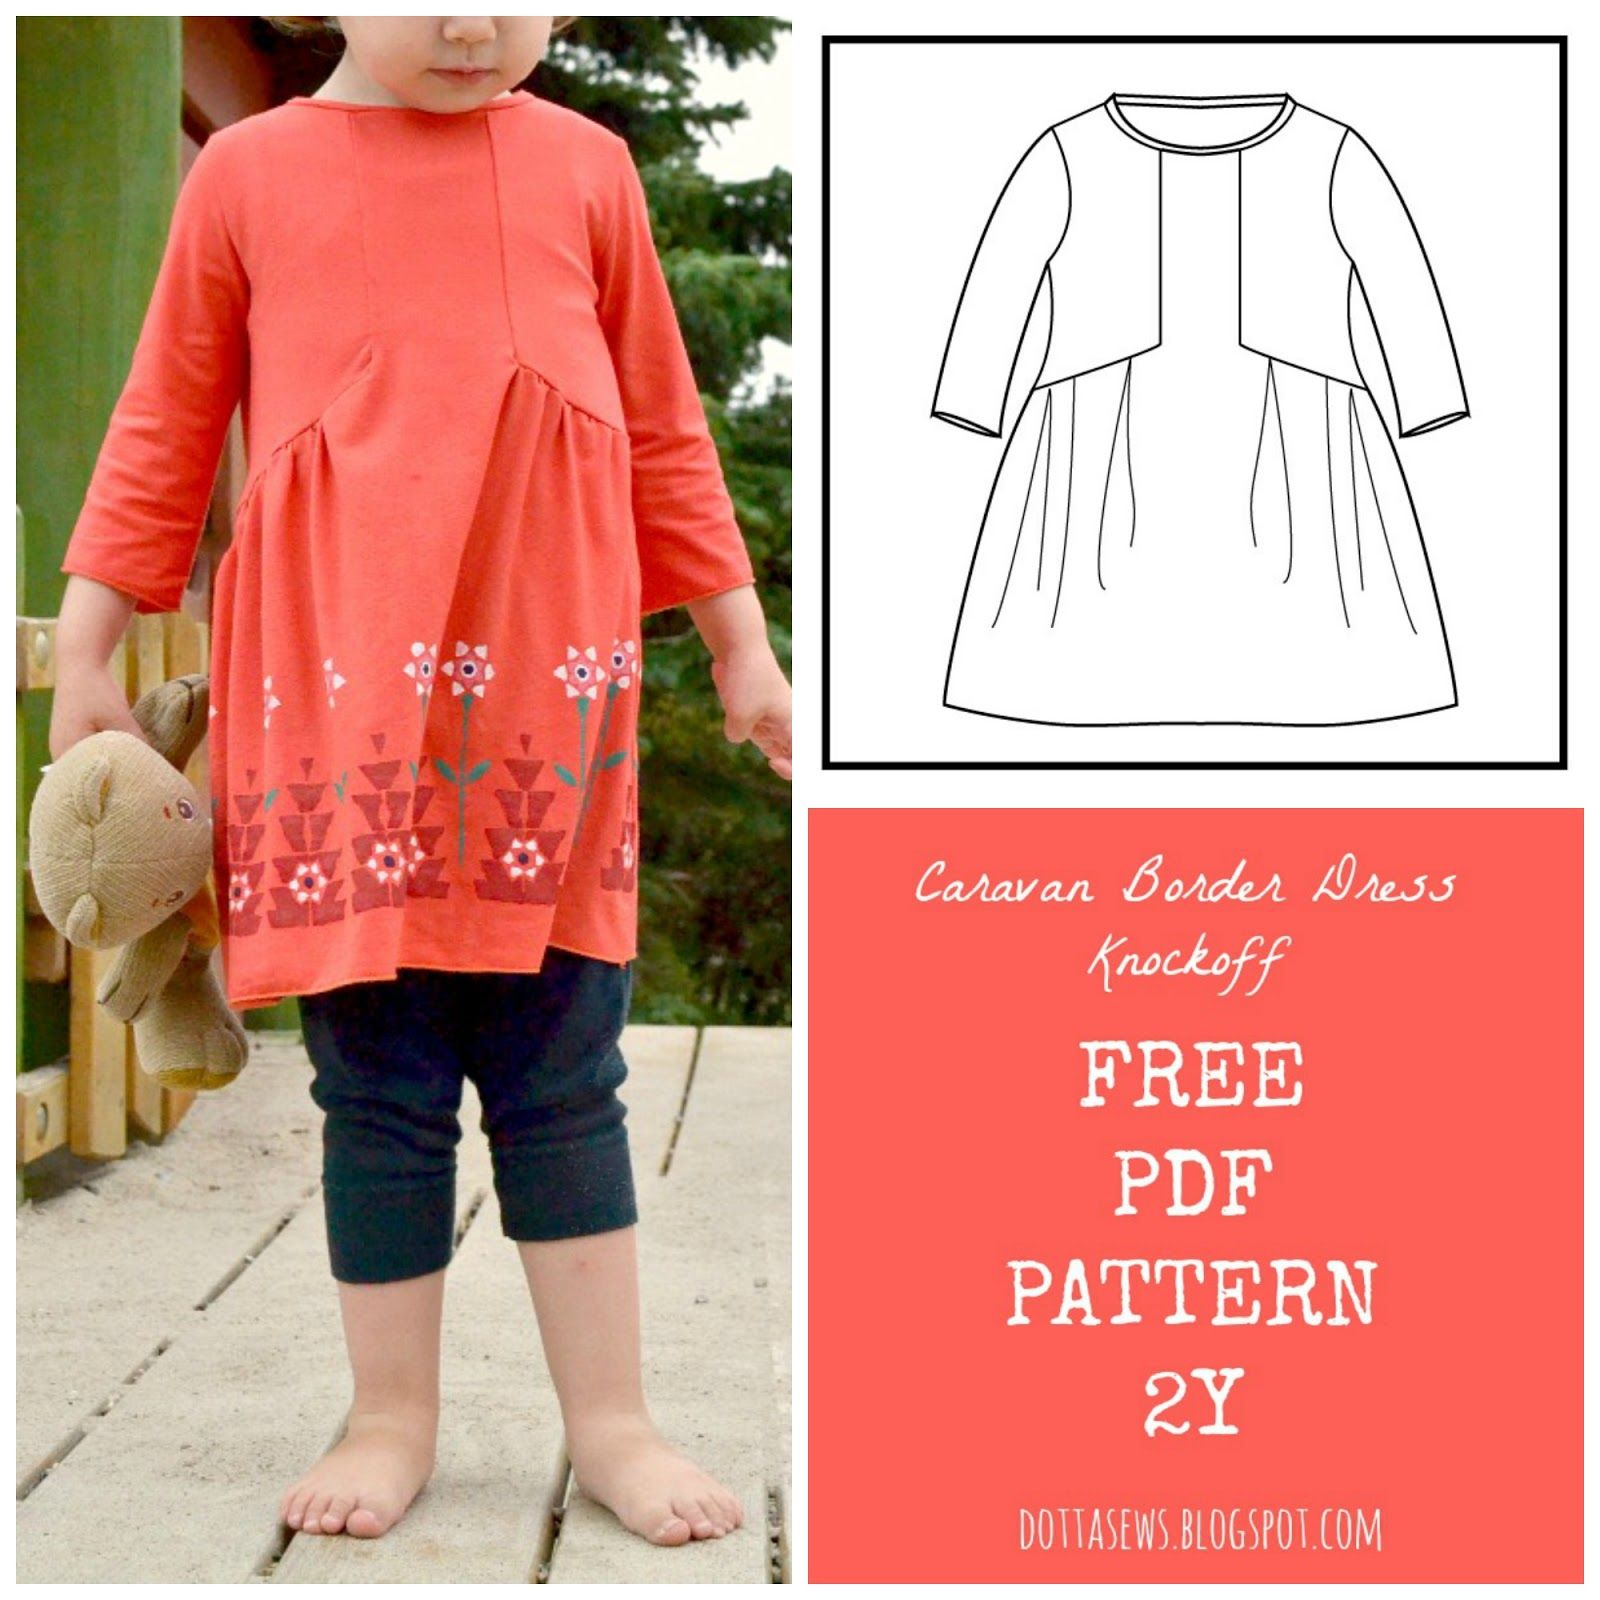 Caravan Border Dress Knockoff FREE PDF Pattern - 2Y only | Free ...